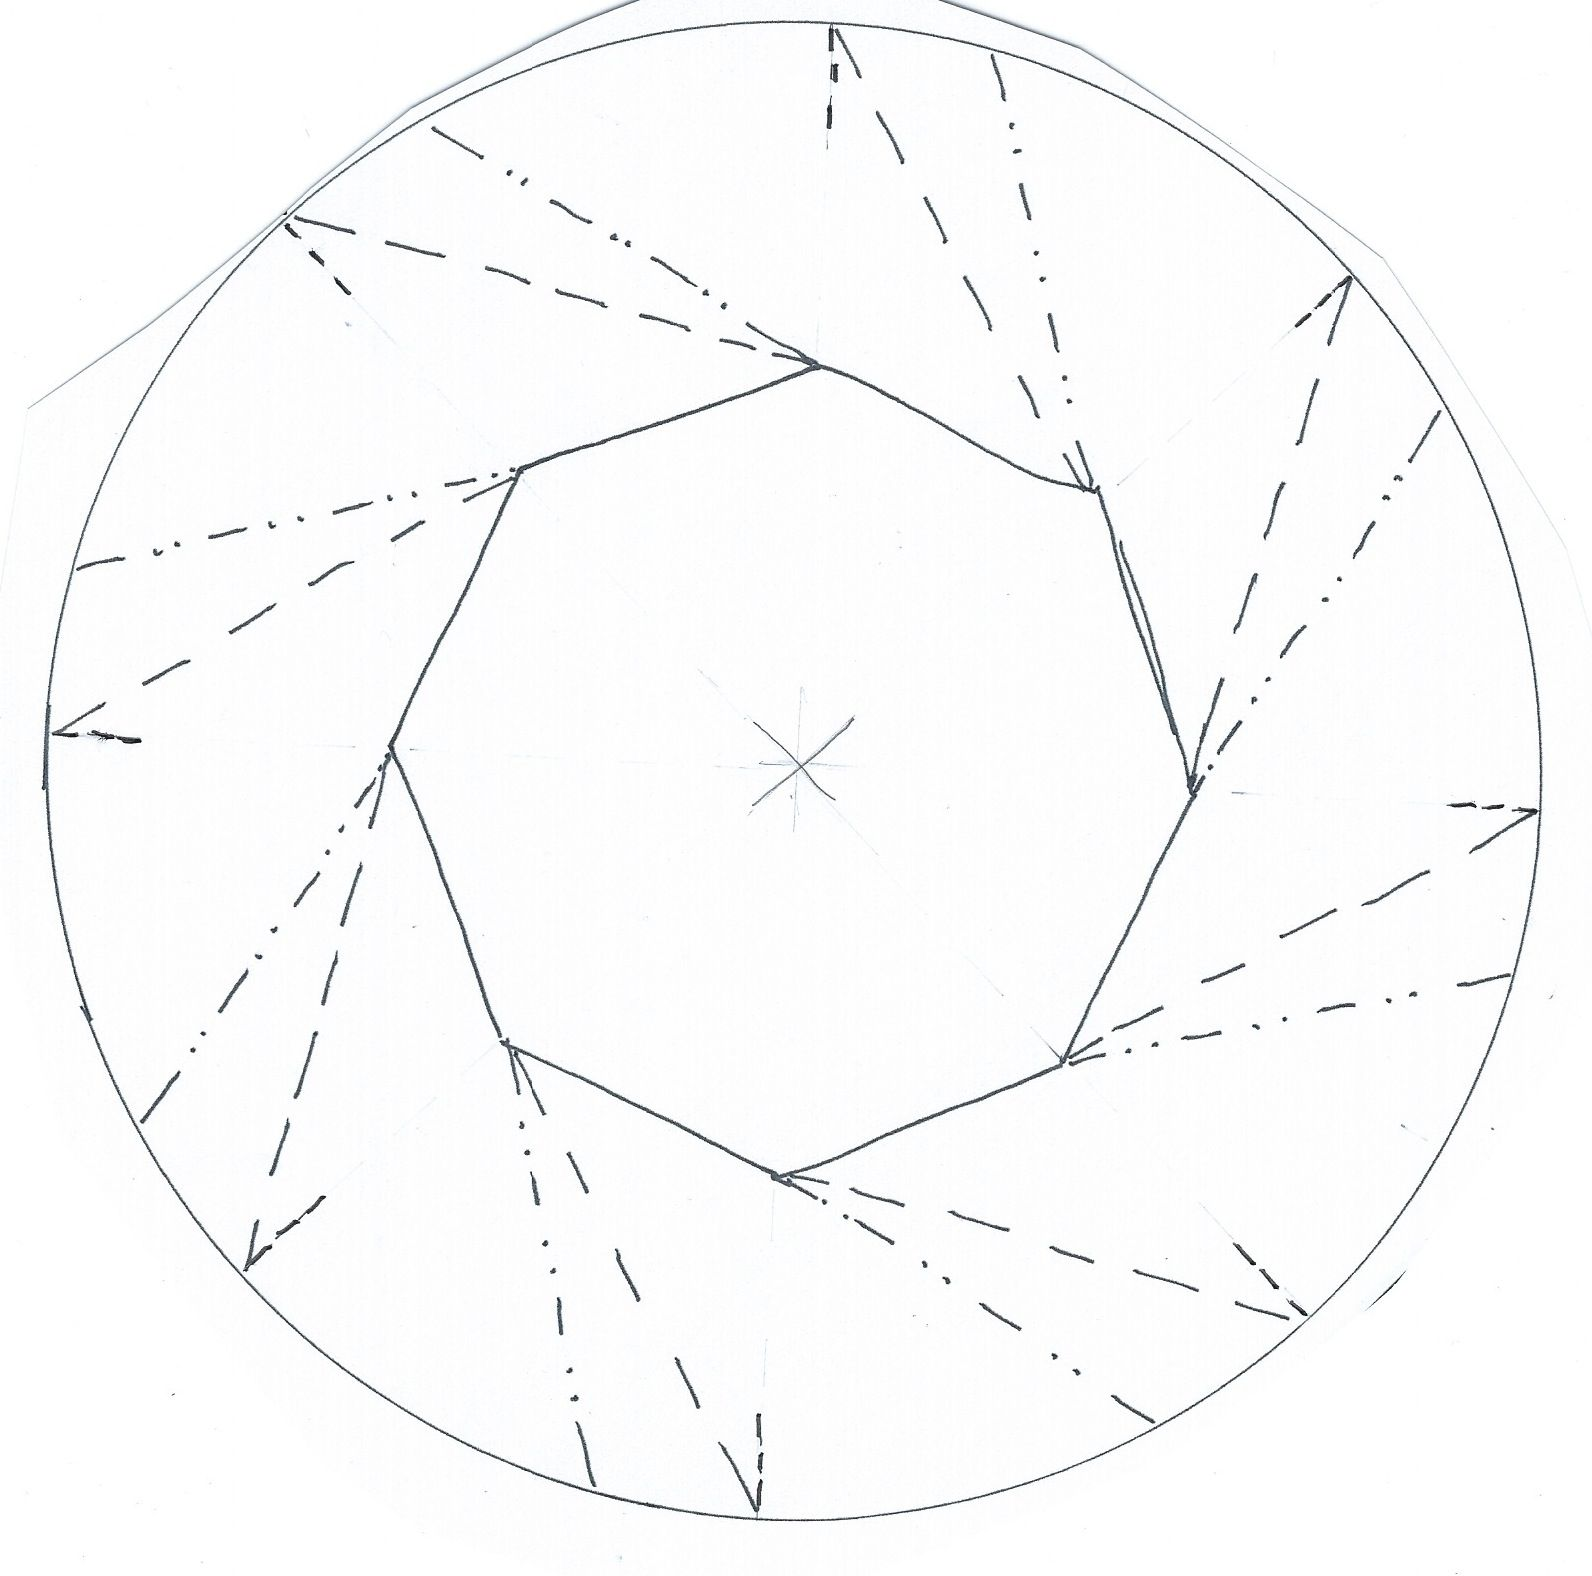 Crease Pattern For The Origami Bowl By Rachel Young This